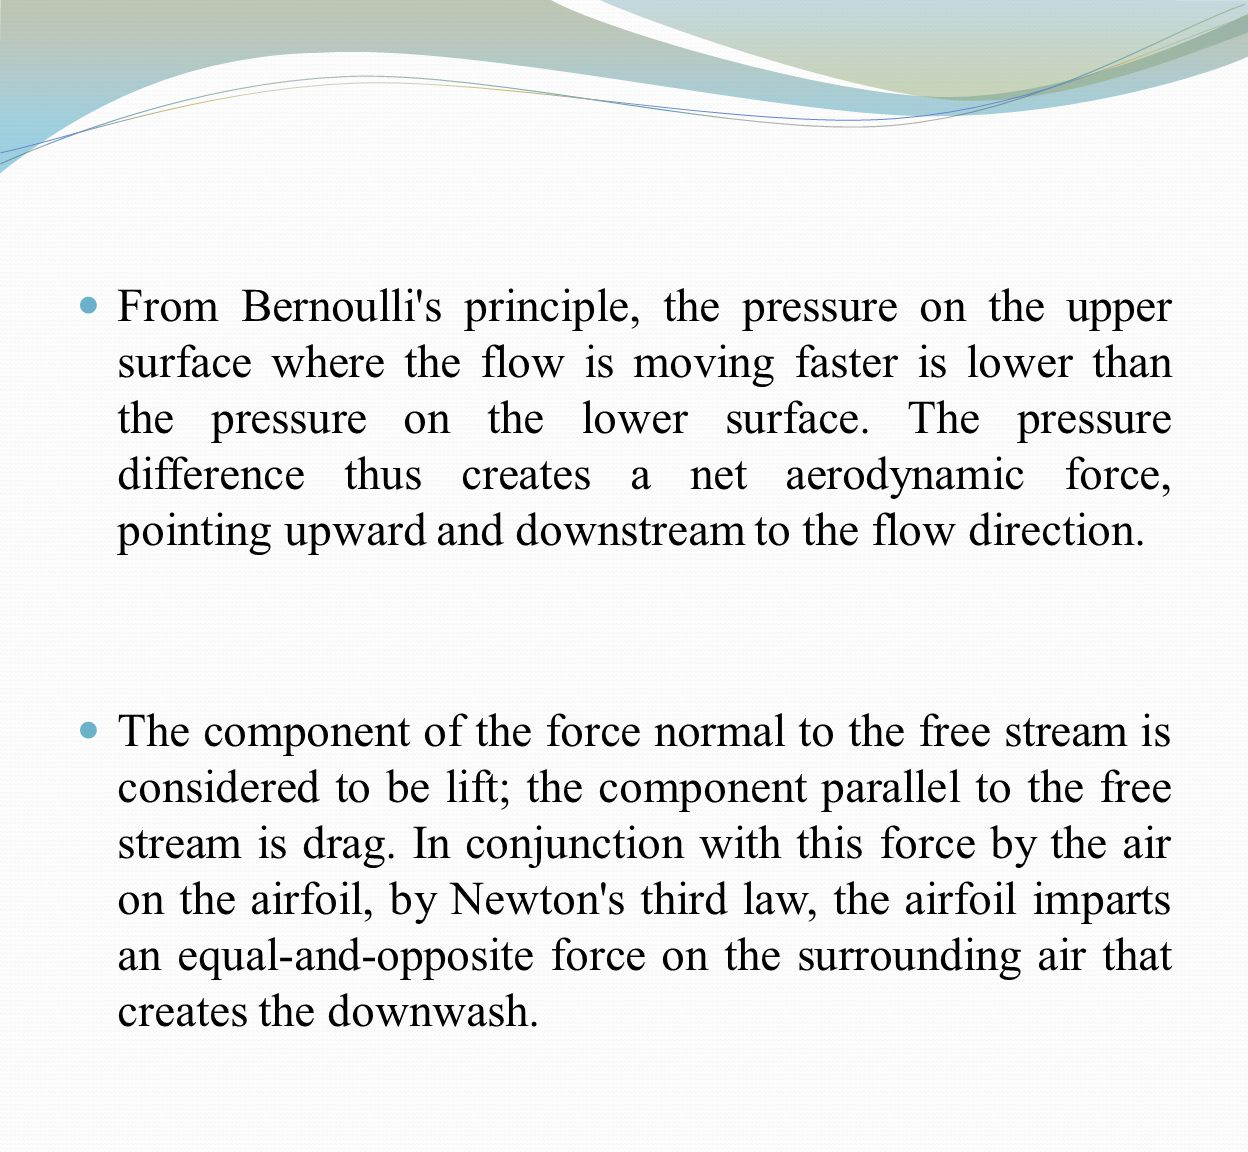 From Bernoulli s principle, the pressure on the upper surface where the flow is moving faster is lower than the pressure on the lower surface. The pressure difference thus creates a net aerodynamic force, pointing upward and downstream to the flow direction.